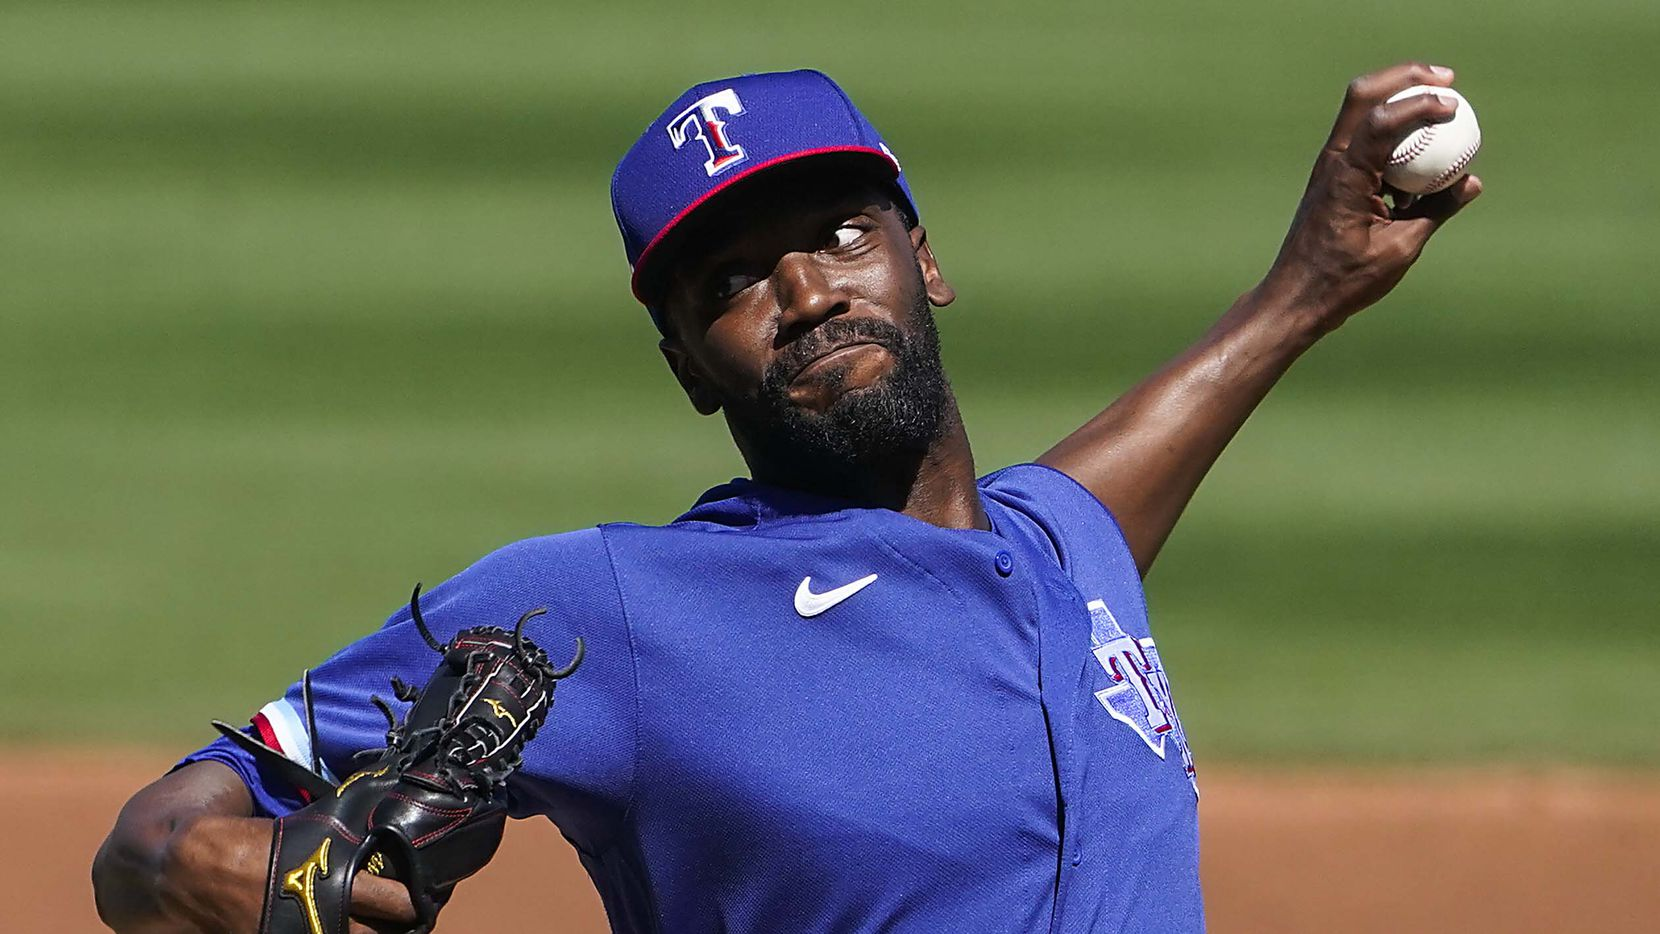 Texas Rangers pitcher Taylor Hearn delivers during the second inning of a spring training game against the Arizona Diamondbacks at Salt River Fields at Talking Stick on Saturday, March 6, 2021, in Scottsdale, Ariz.